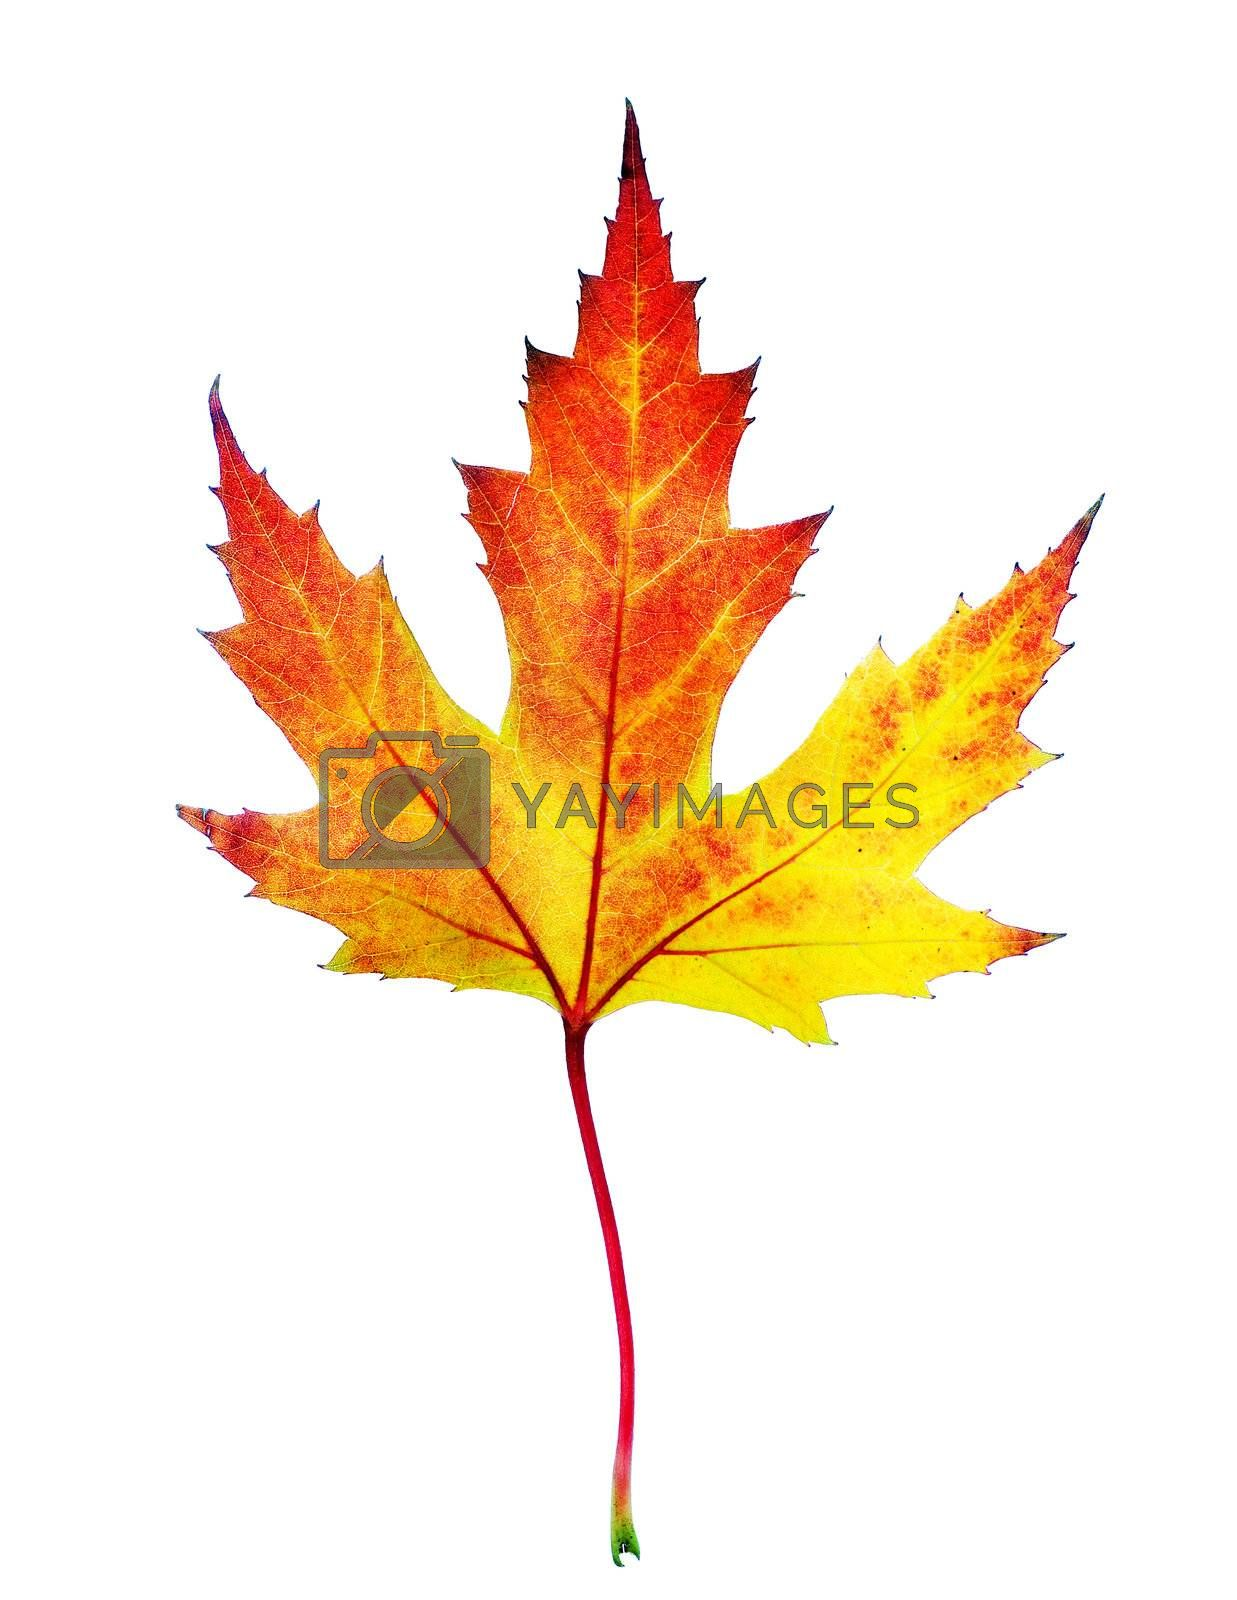 Perfect Autumn Leaf Over White by Subbotina Anna